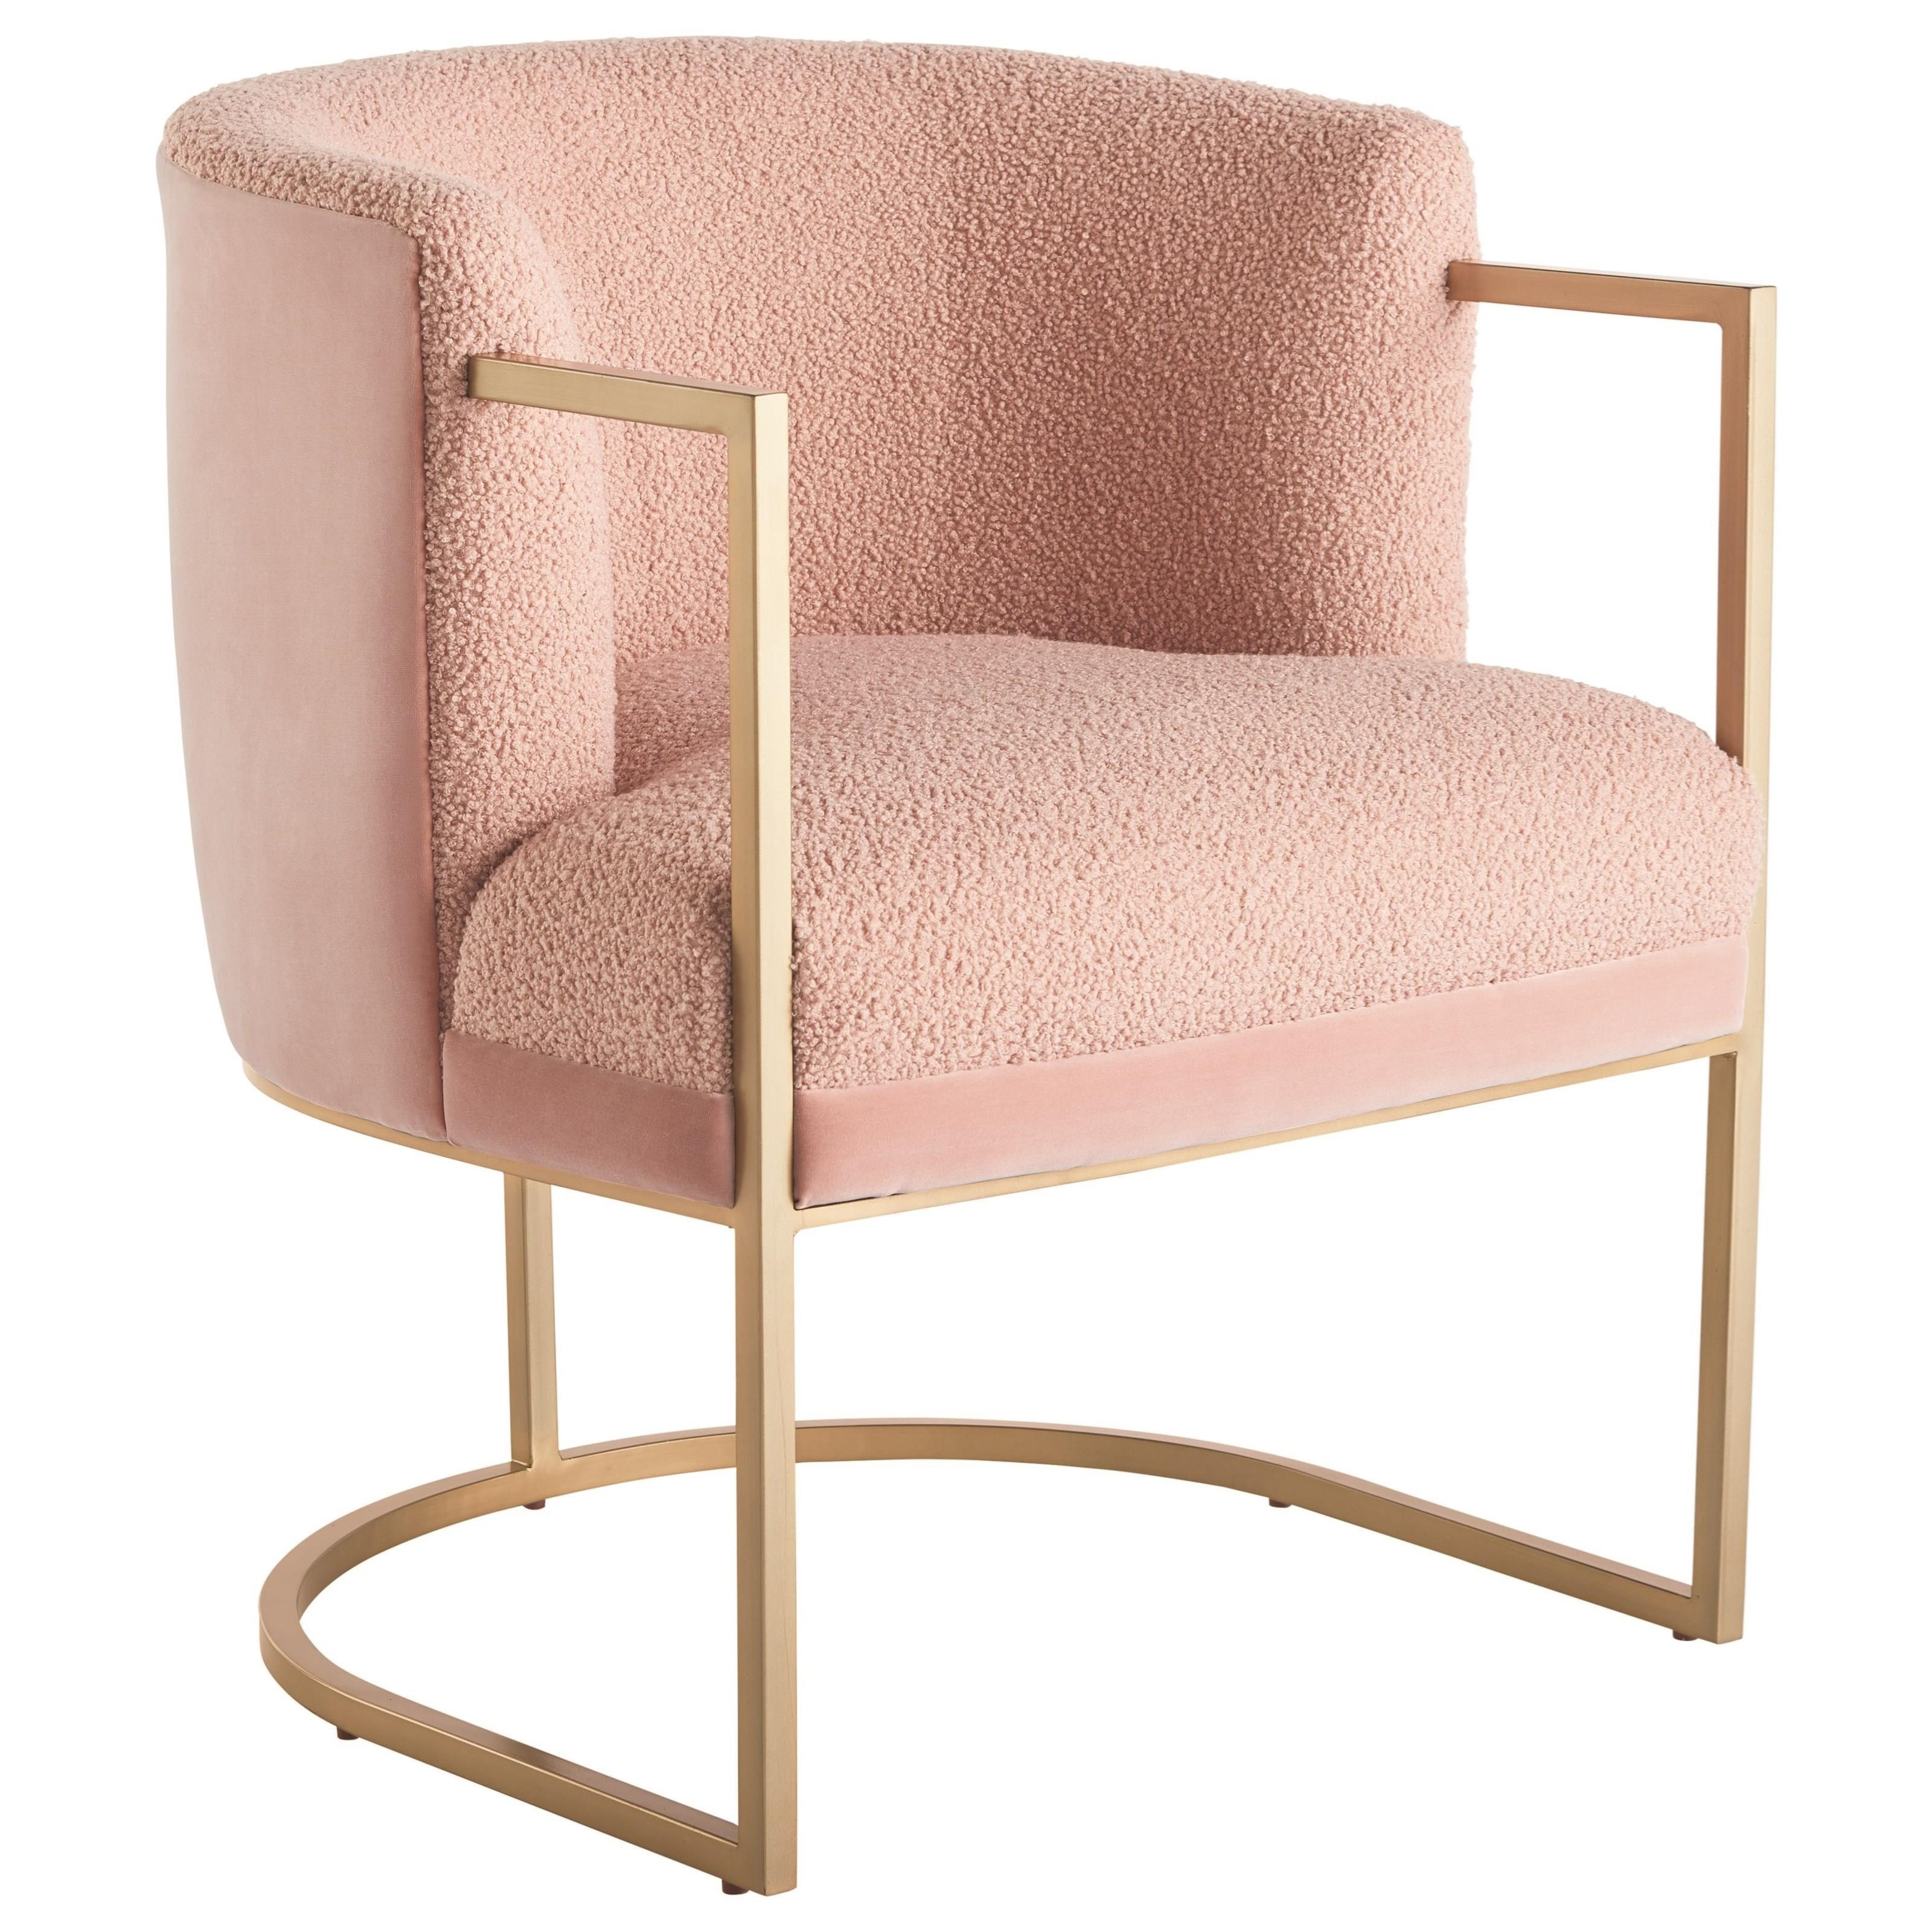 Love. Joy. Bliss.-Miranda Kerr Home Cali Accent Chair by Universal at Baer's Furniture